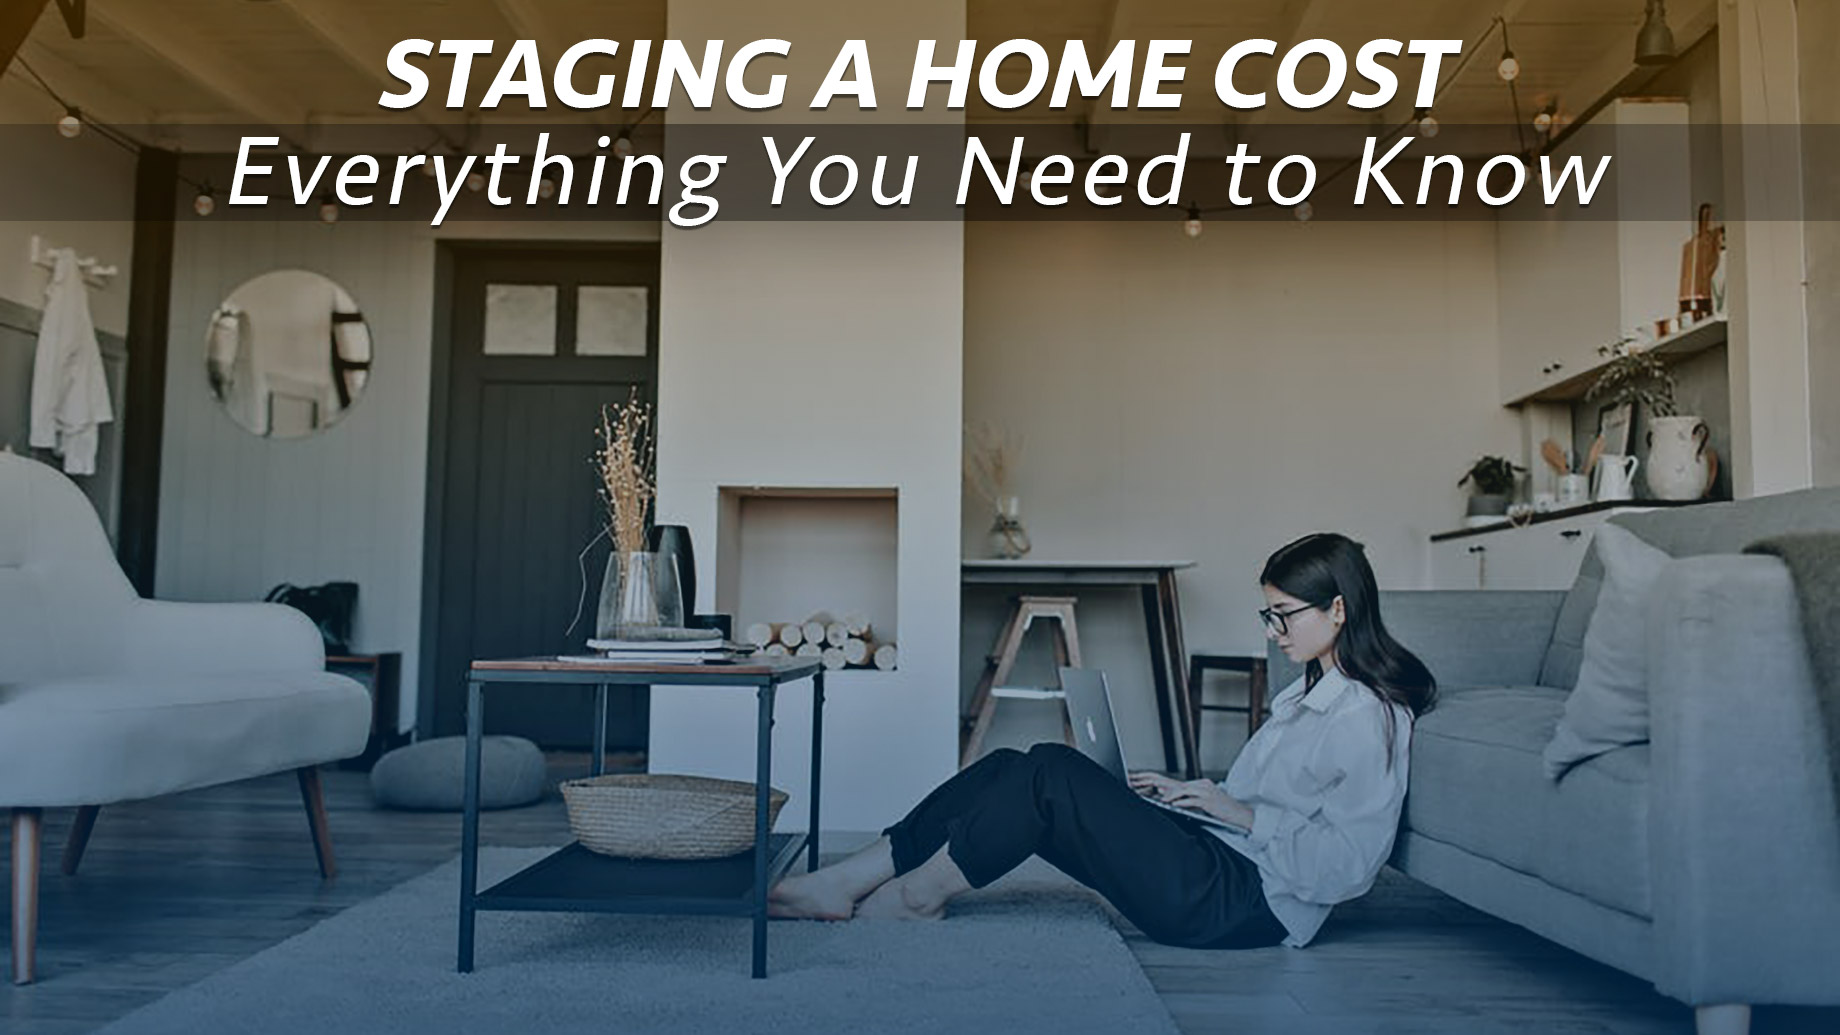 Staging a Home Cost - Everything You Need to Know